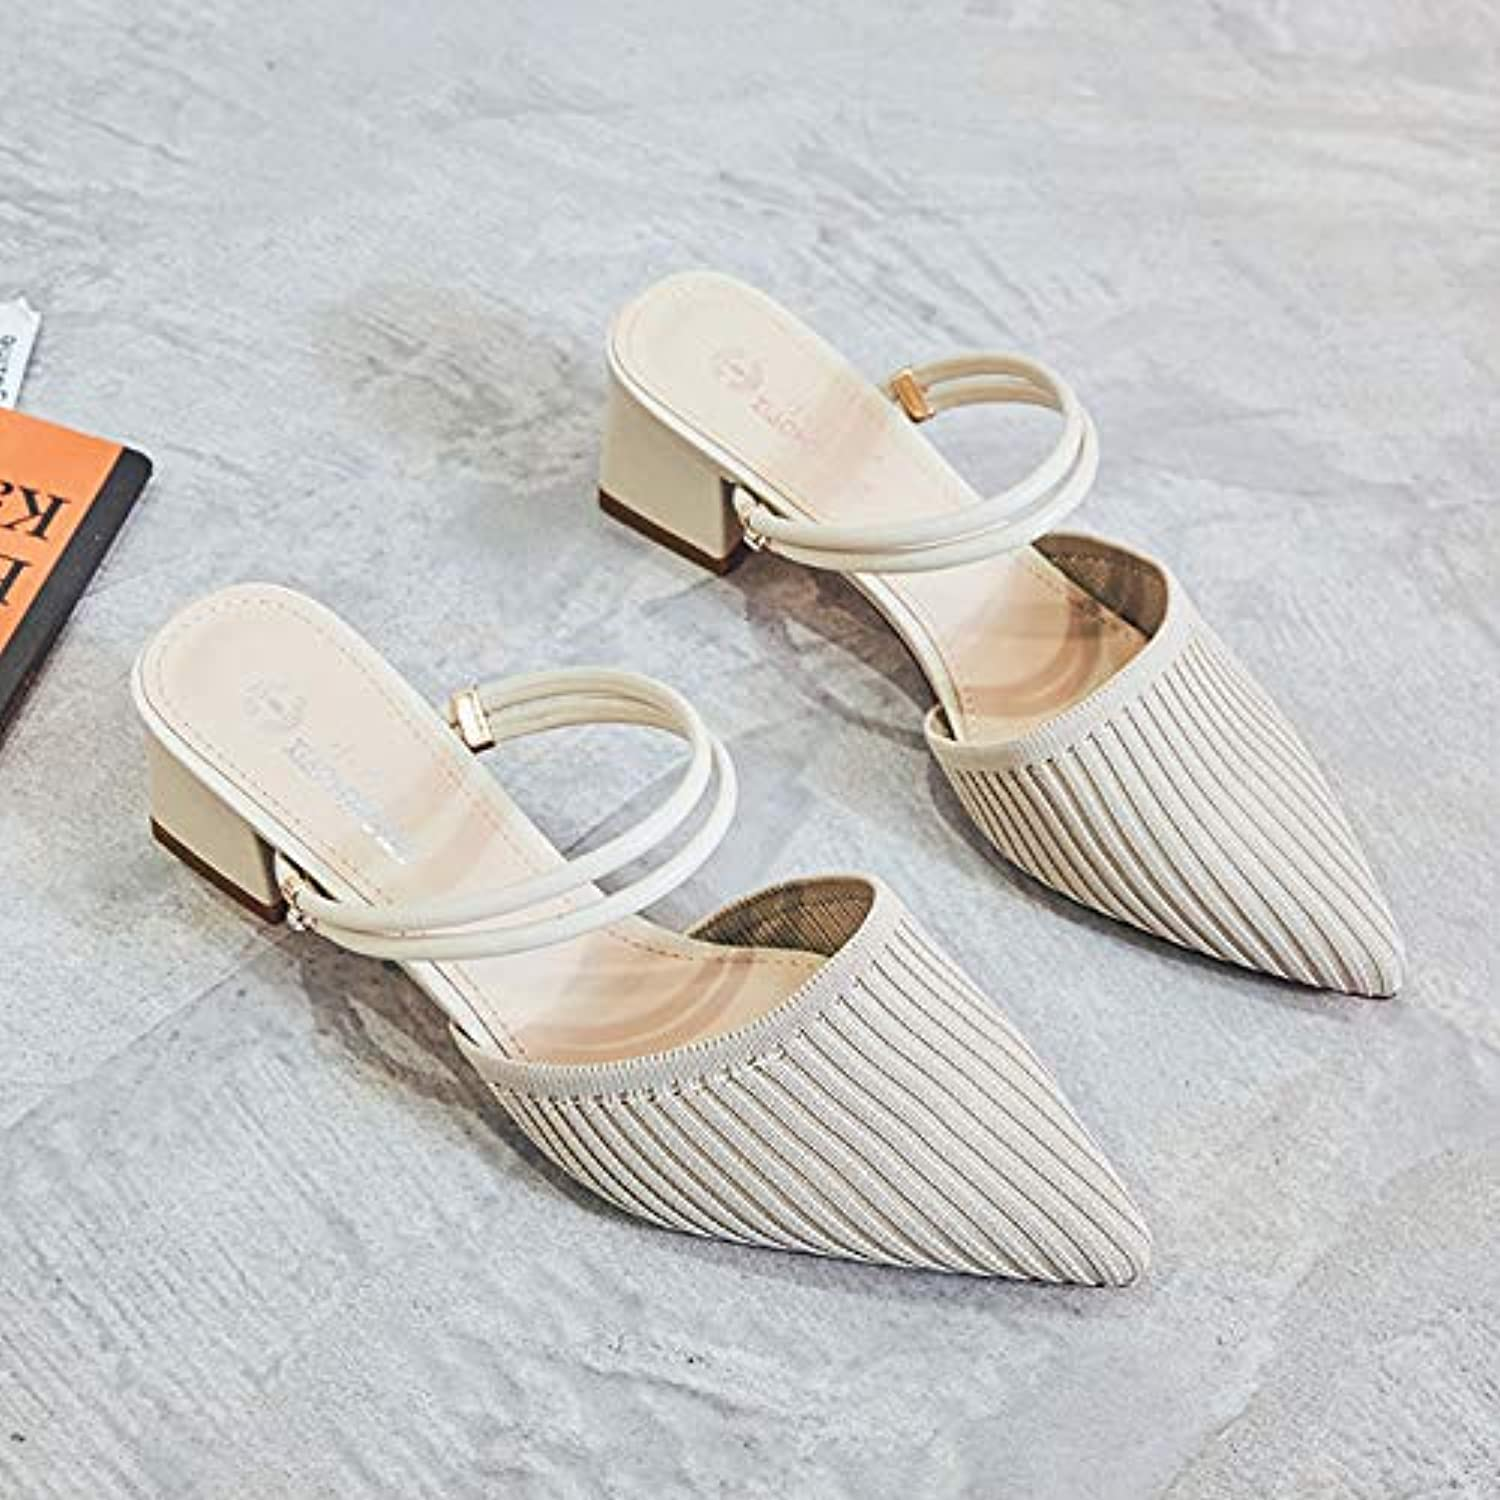 Pointed Slippers Women 2019 Summer New Thick with Lazy Half Slippers Female Fairy Wind Sandals Women One shoes Two Wear,A,US5.5 EU36 UK3.5 CN35